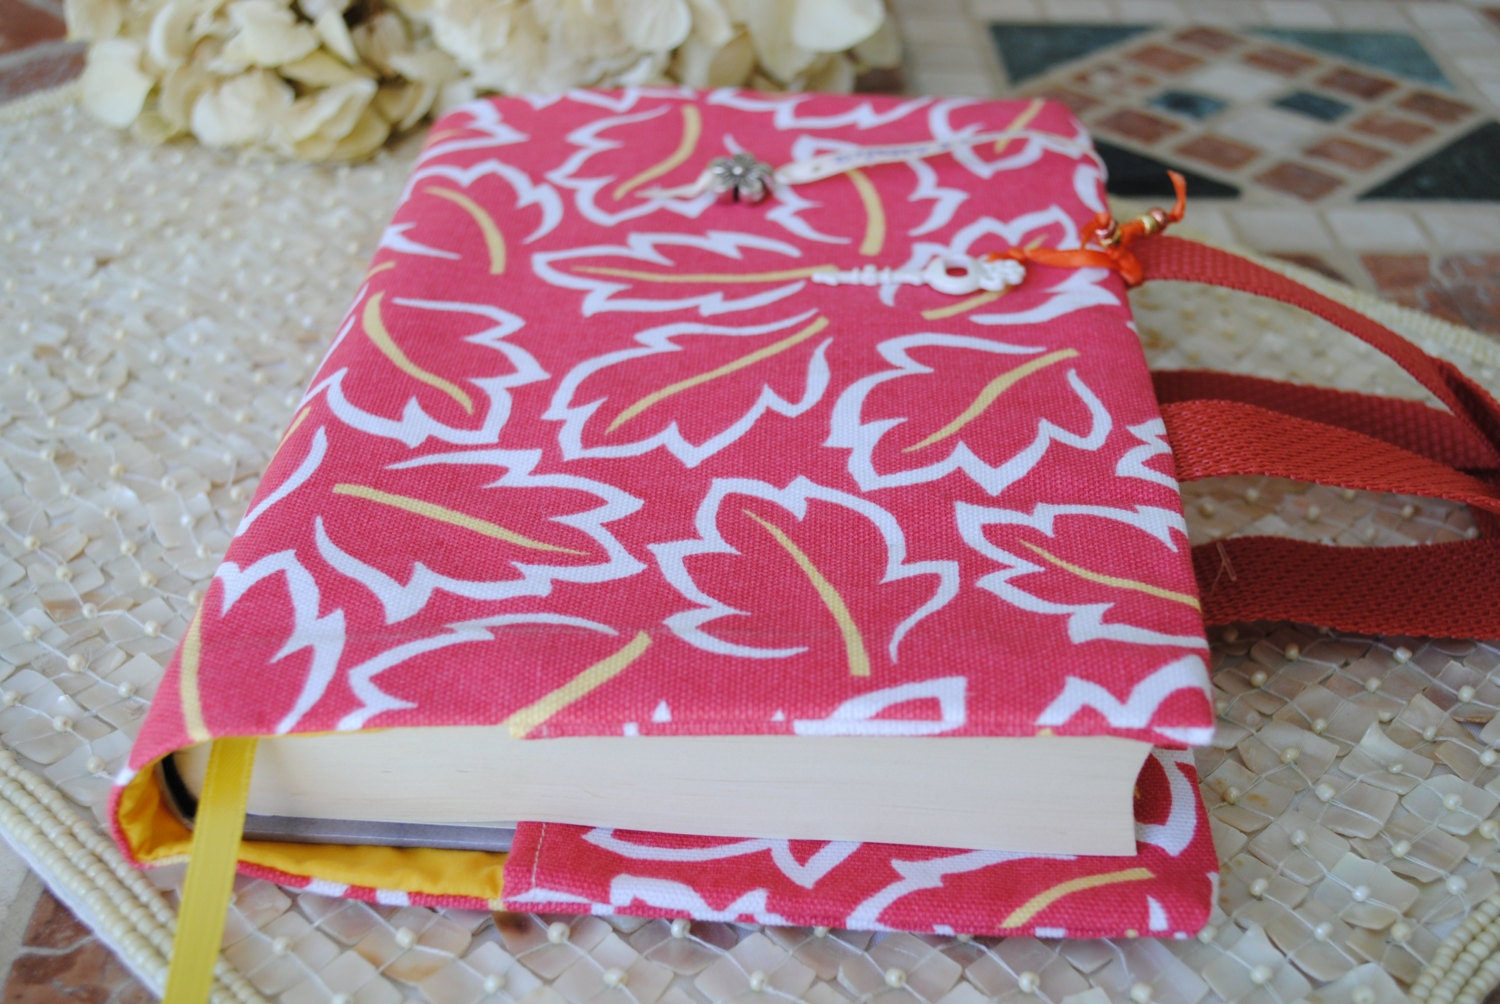 Fabric Book Cover With Handles ~ Fabric book cover with handles ristmas gift by maria natalia